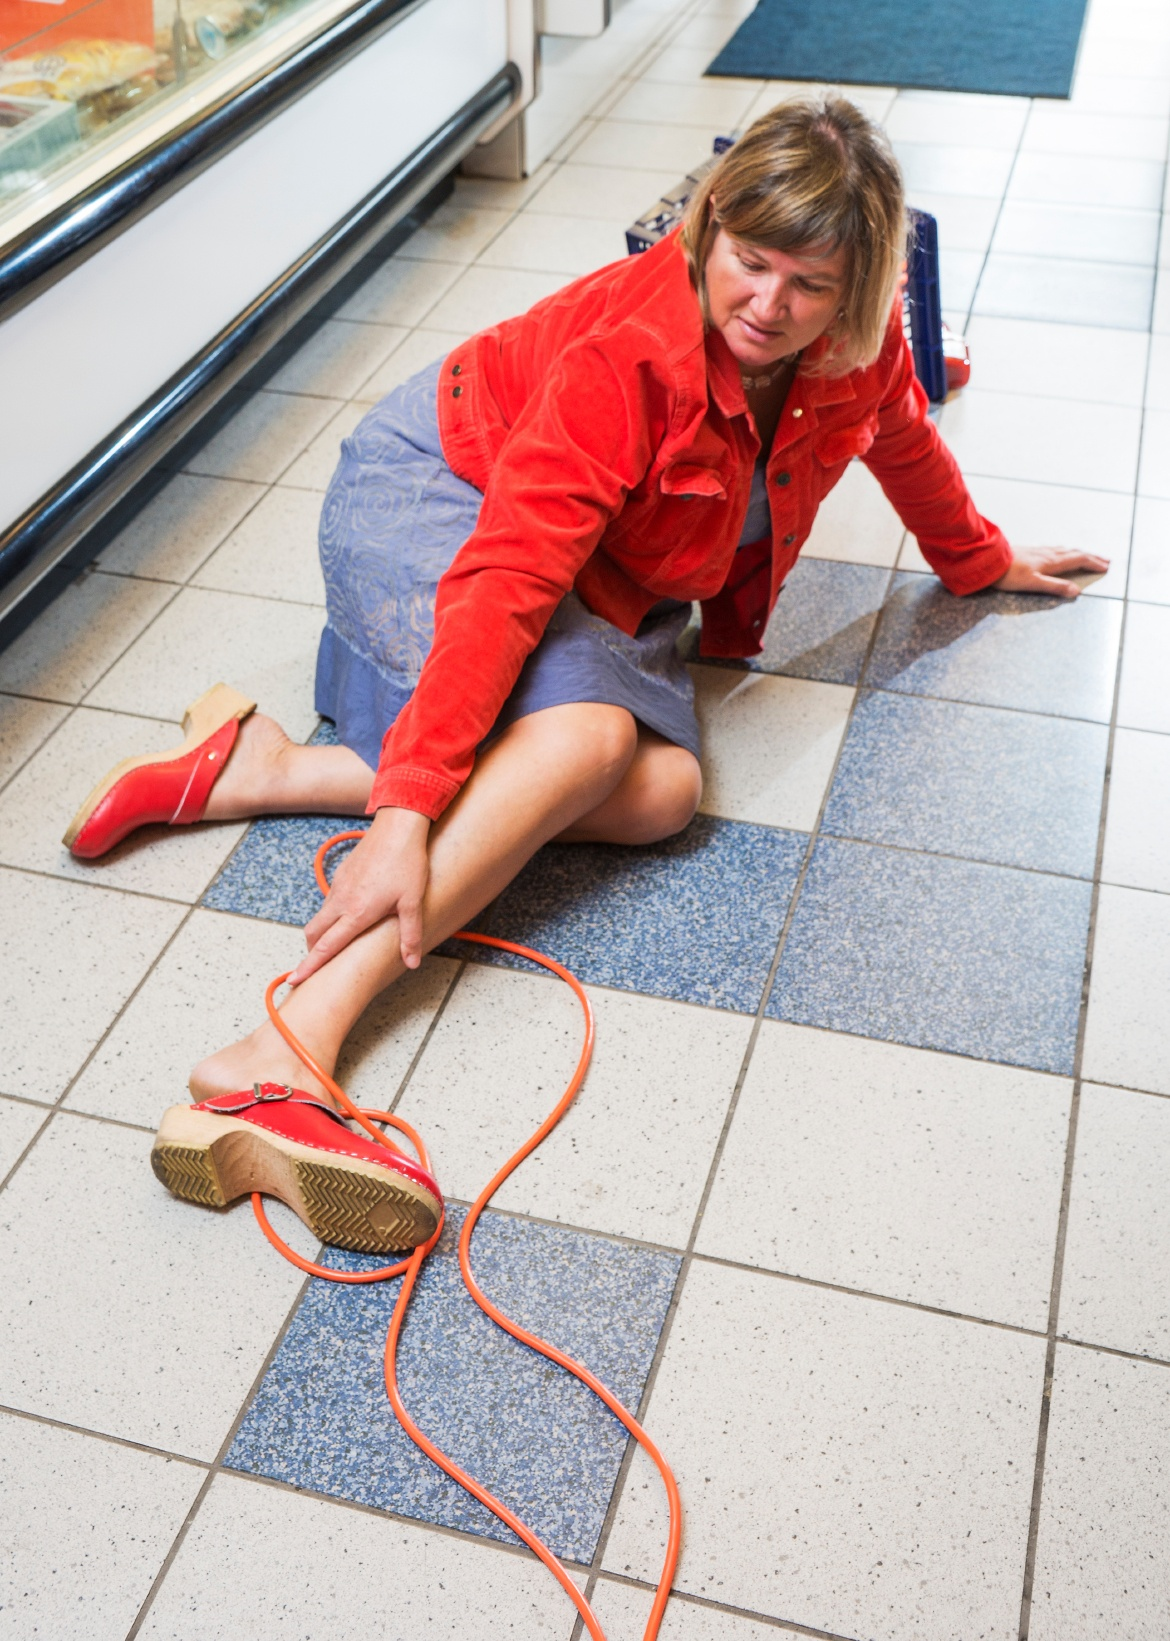 Atlanta Slip and Fall Injury Attorney